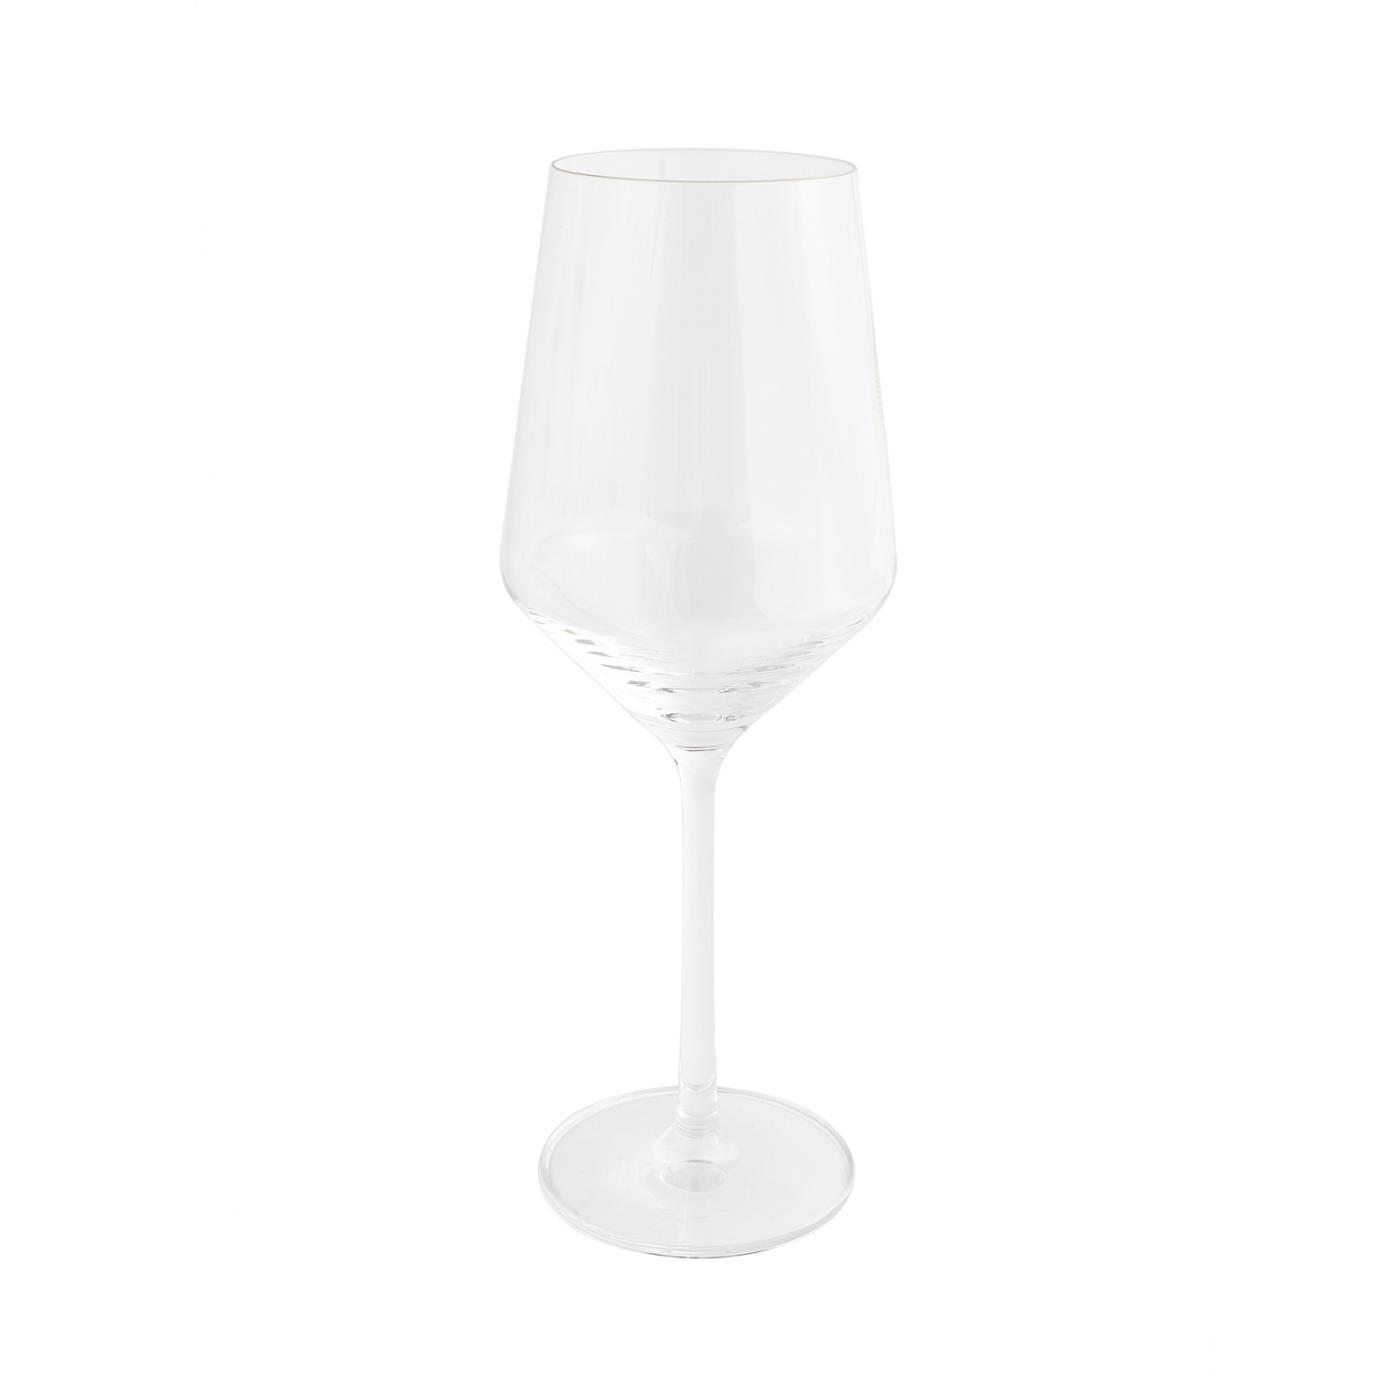 Pure Collection -  White Wine Glass 13.8 oz